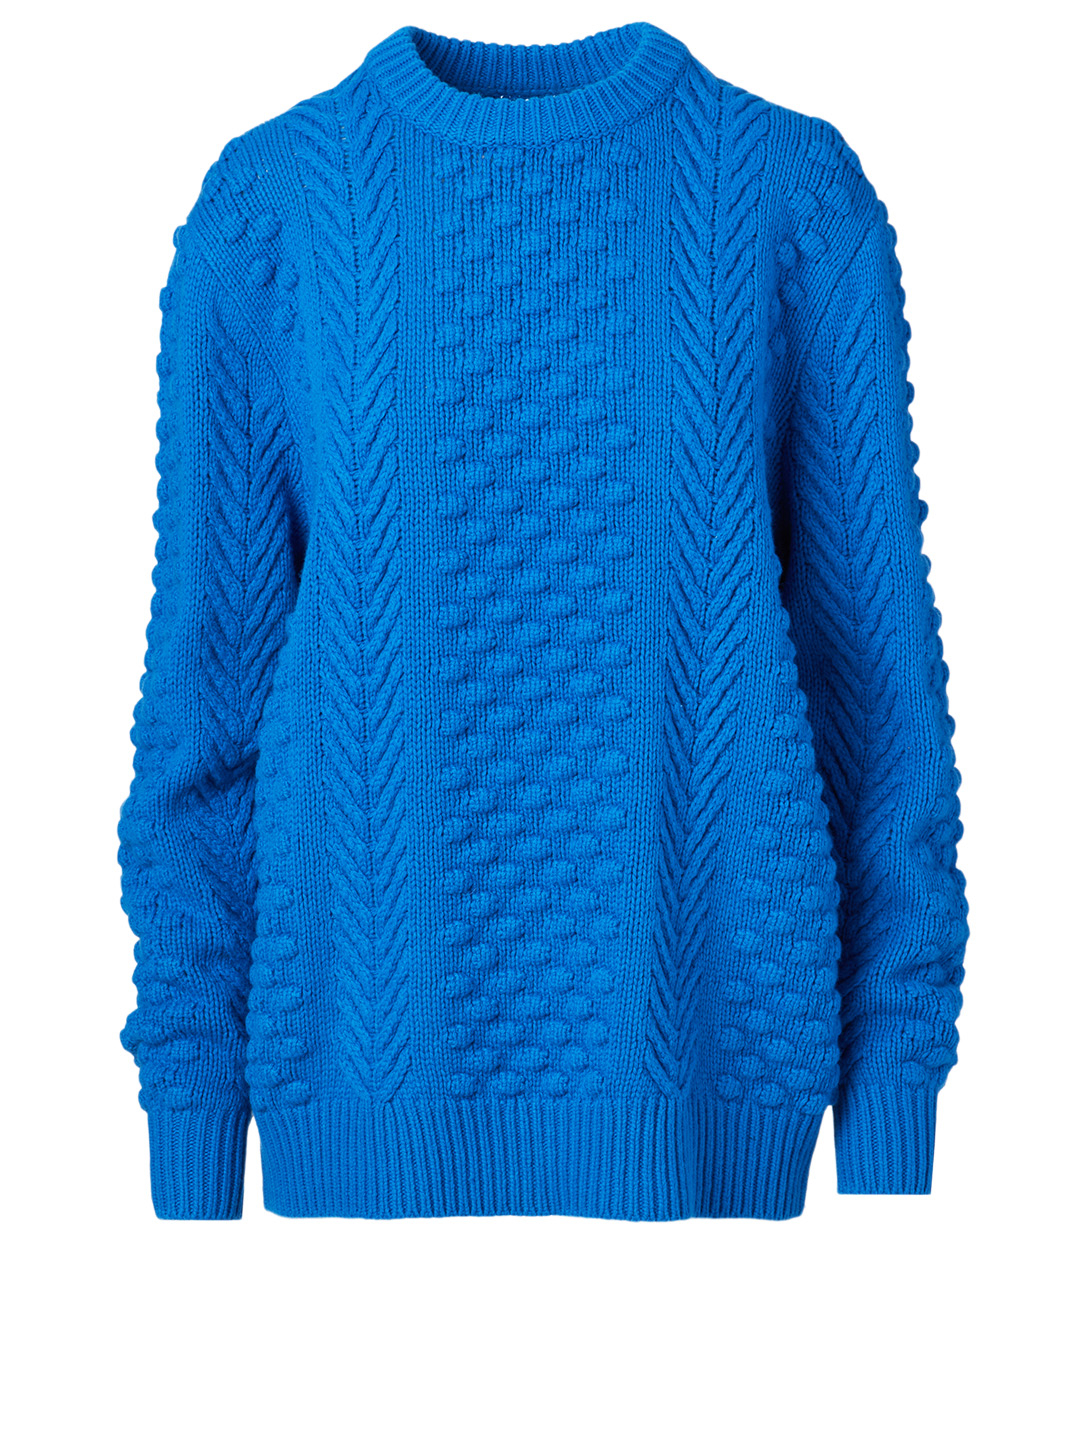 TORY SPORT Chunky Merino Cable Knit Sweater Women's Blue